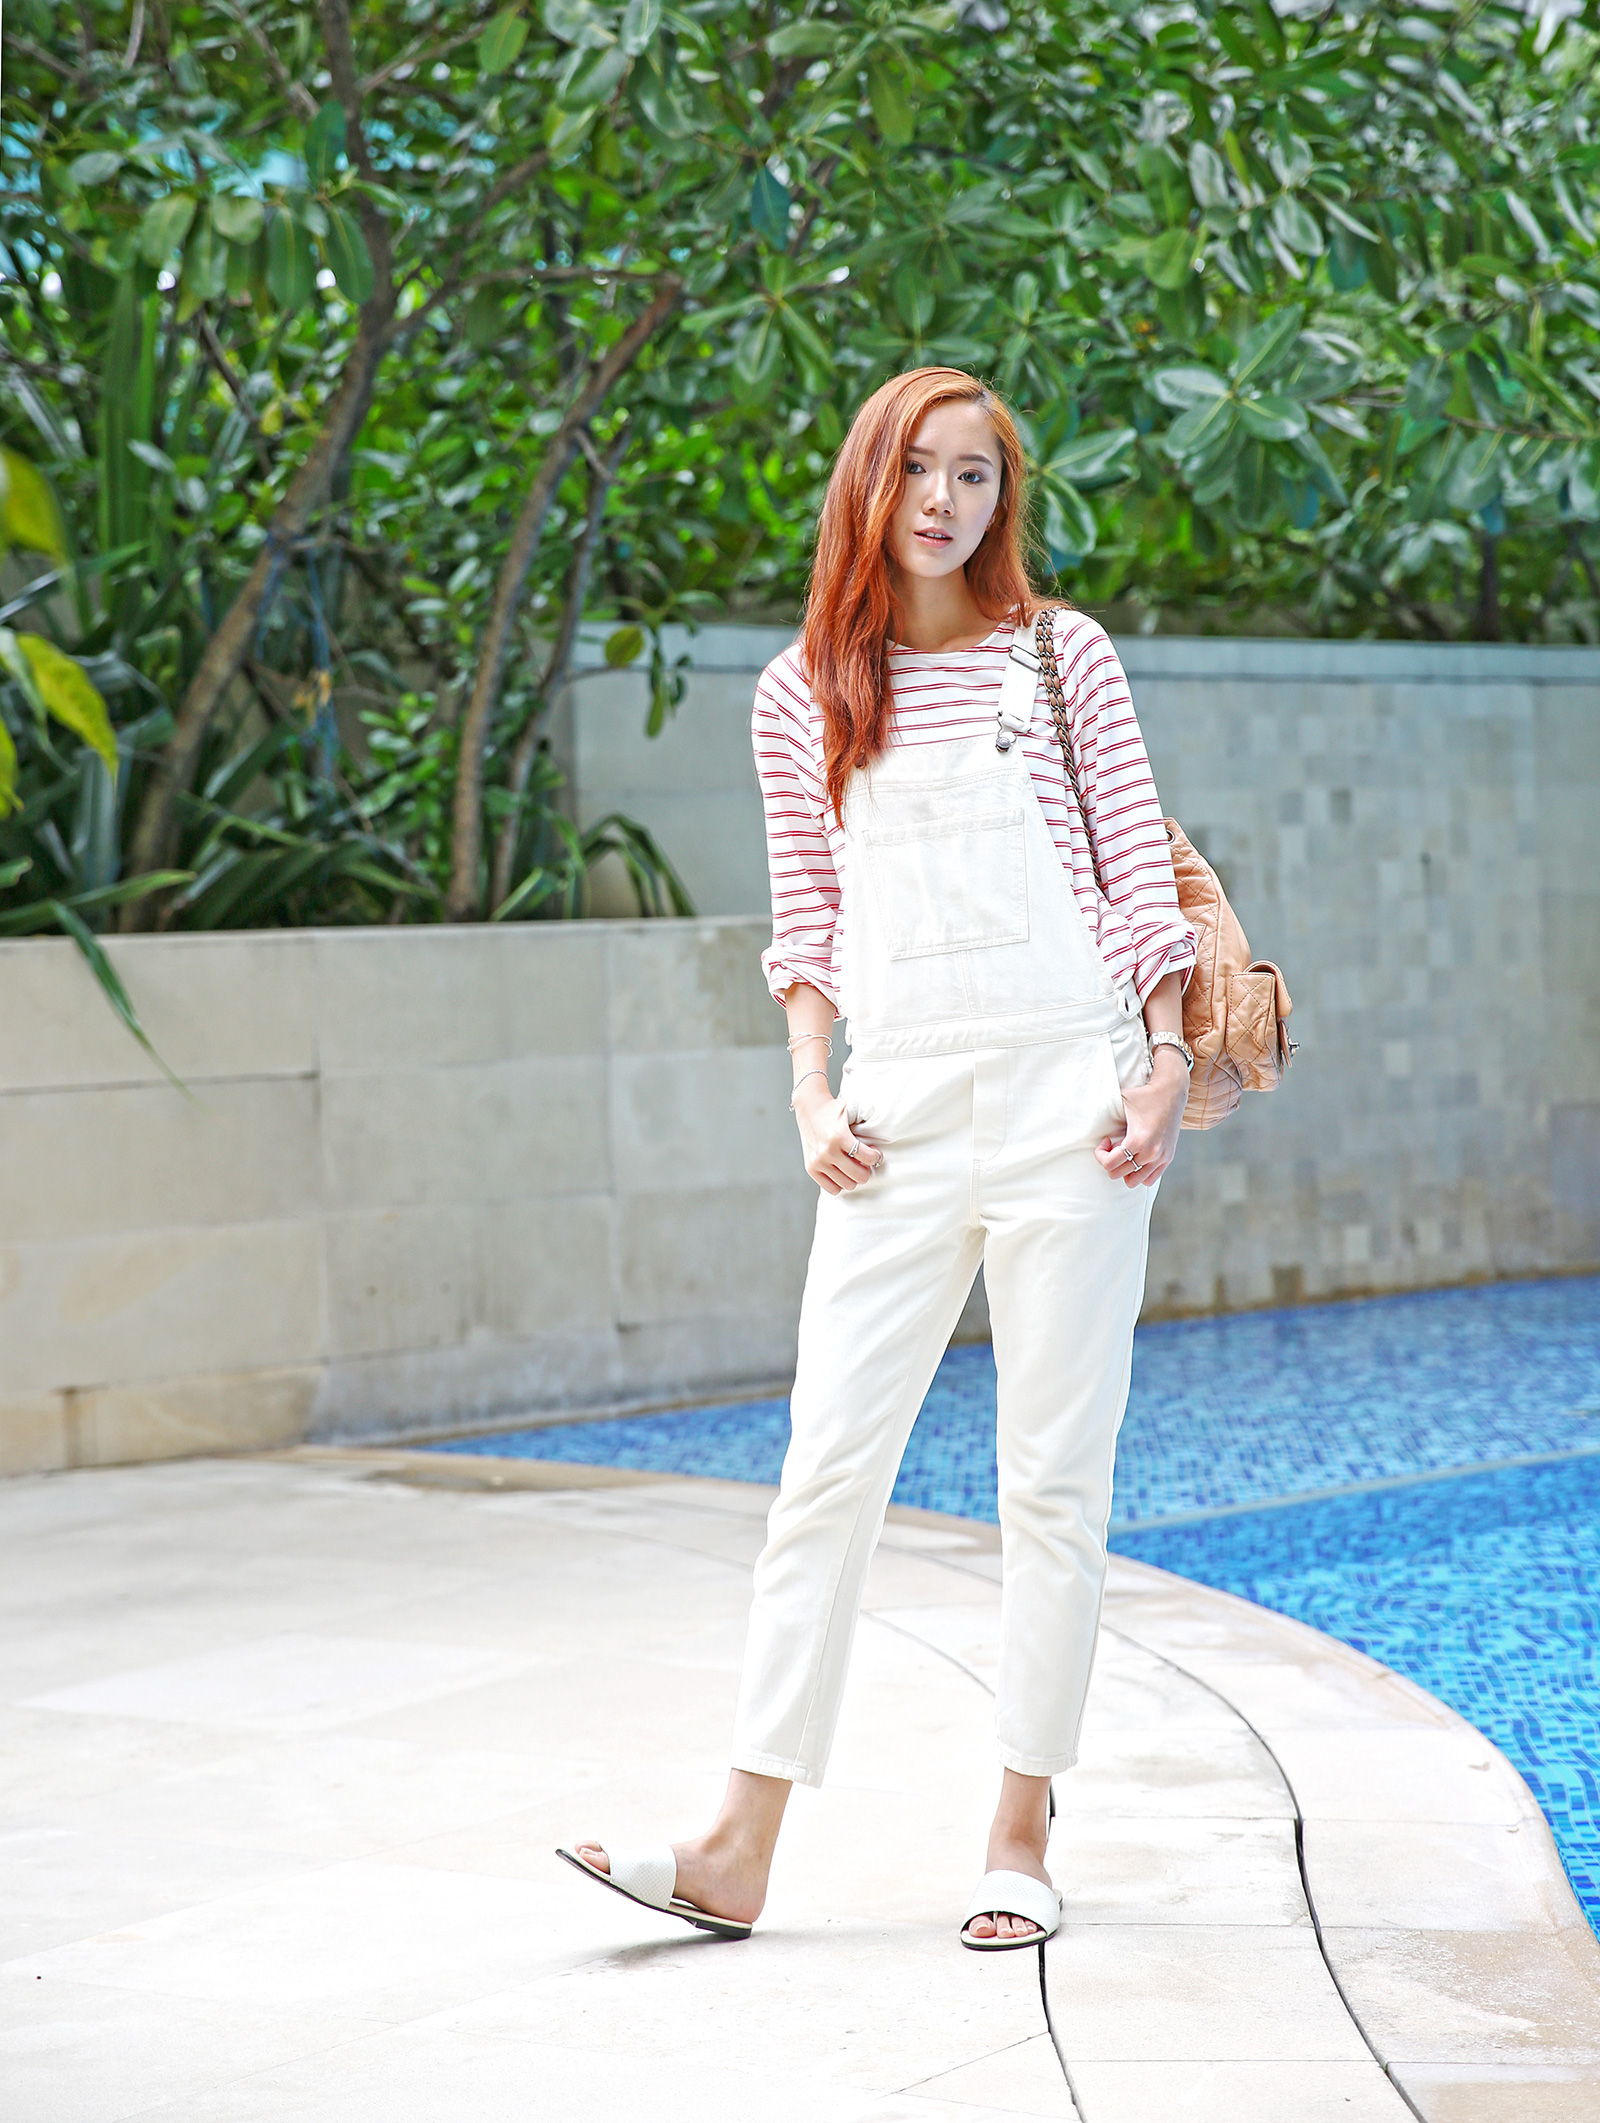 Topshop dungarees, Newbark slippers, Chanel backpack | www.itscamilleco.com